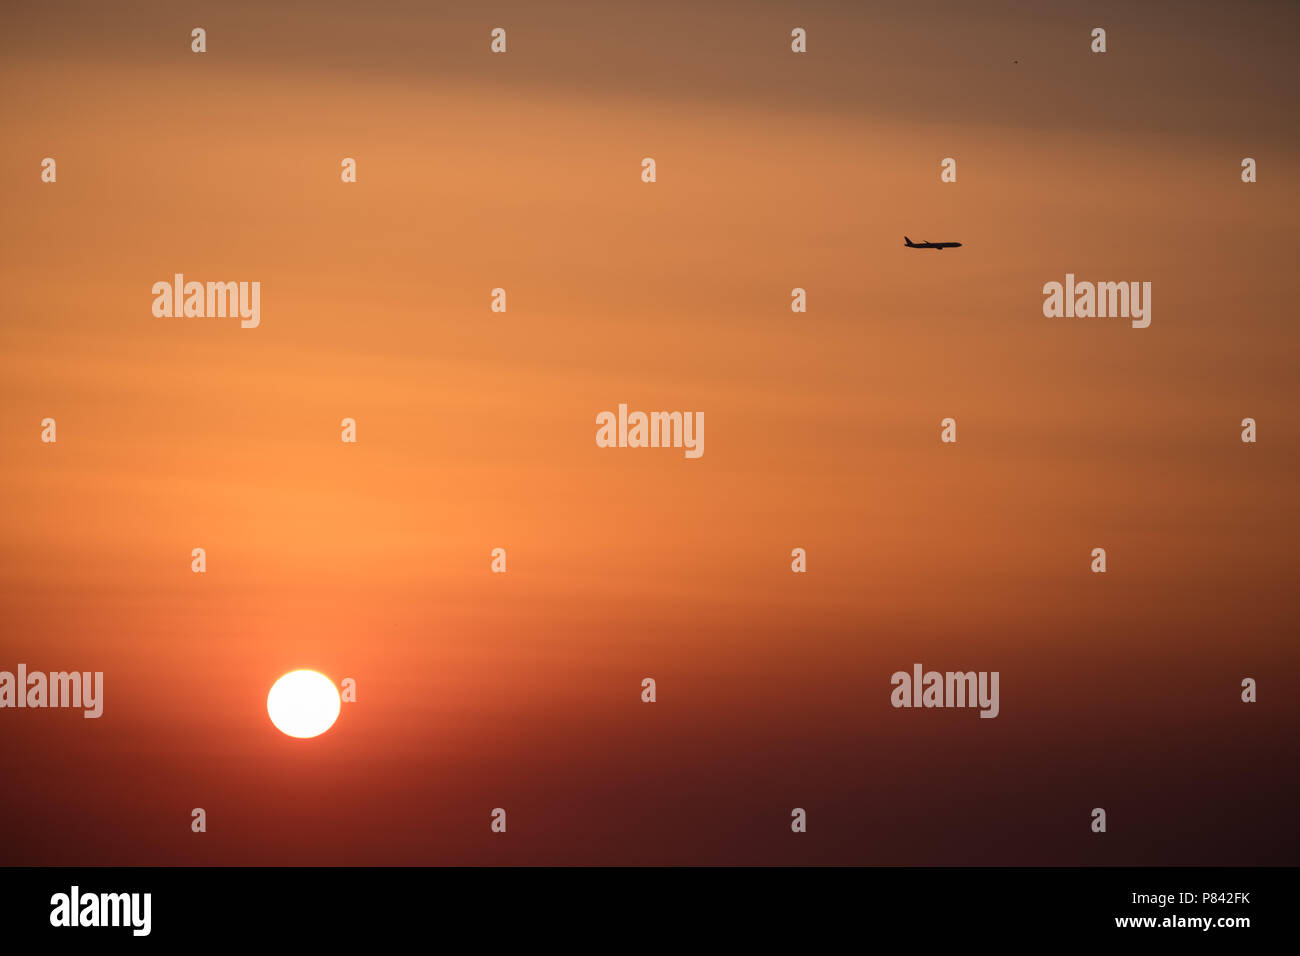 Airplane ( Aeroplane ) passing by a setting sun with gorgeous orange and red sky to its destination, East Attica, Greece, Europe. Stock Photo